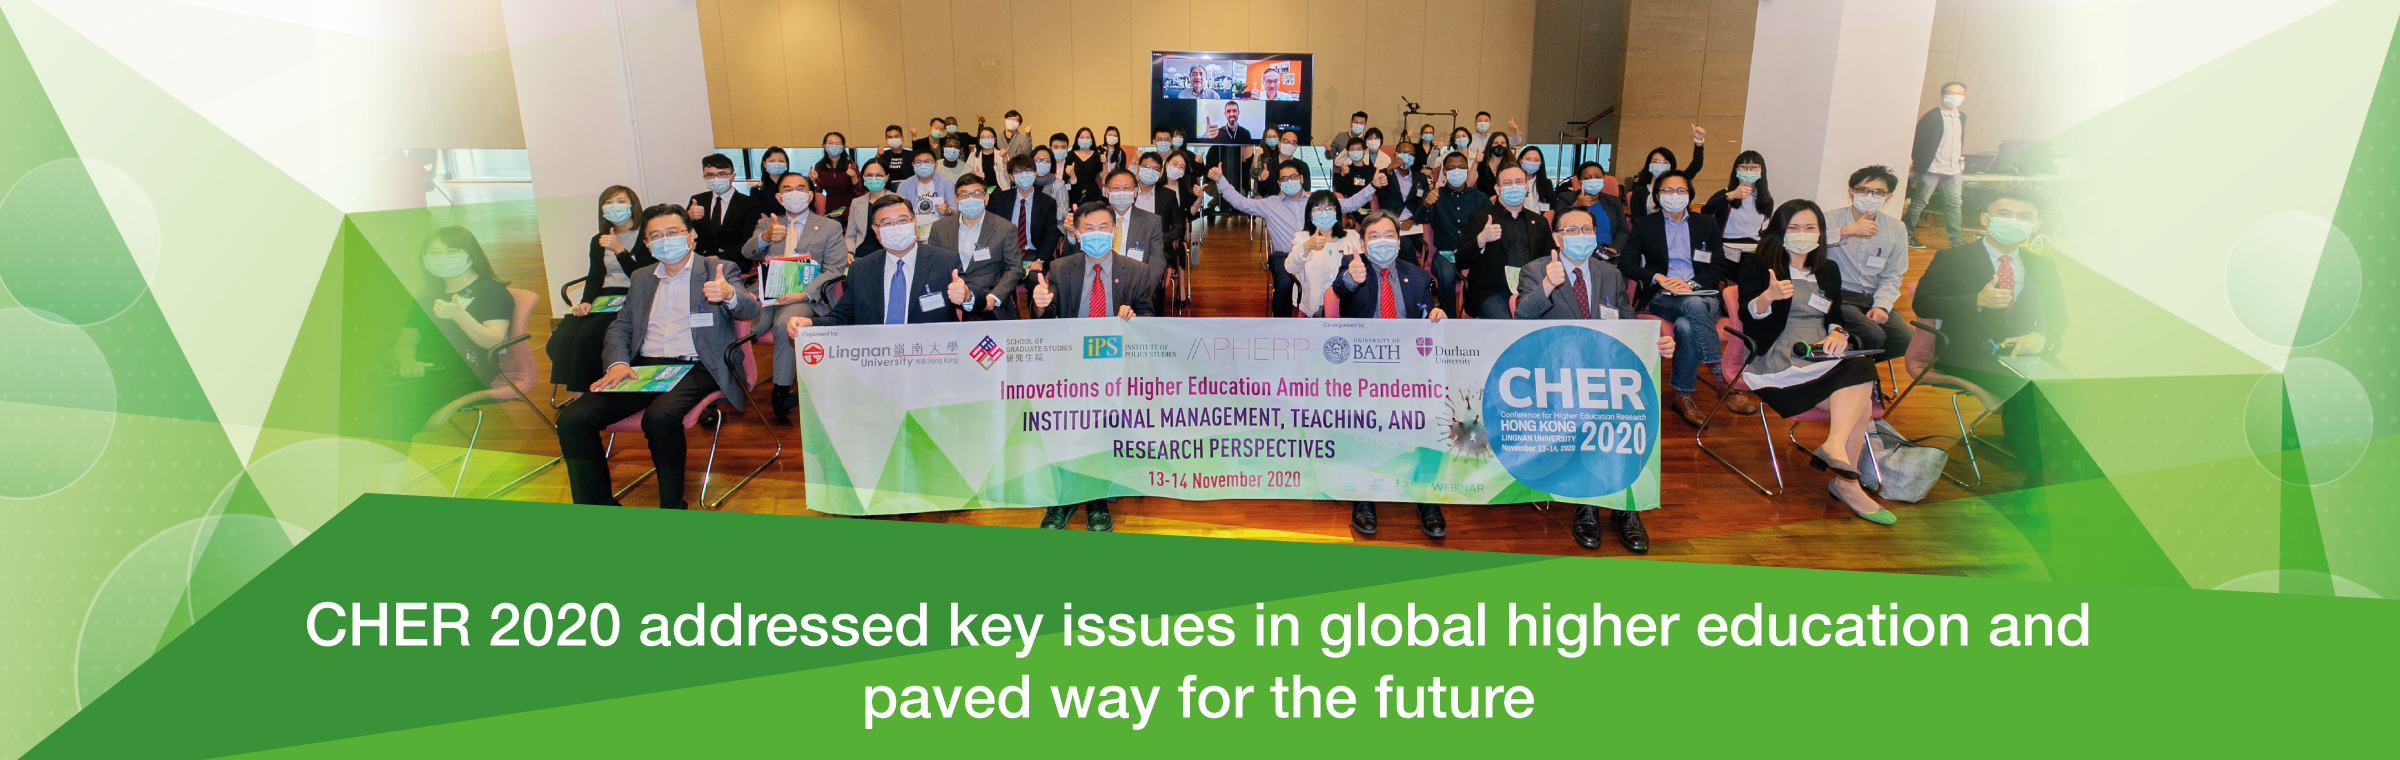 CHER 2020 addressed key issues in global higher education and paved way for the future